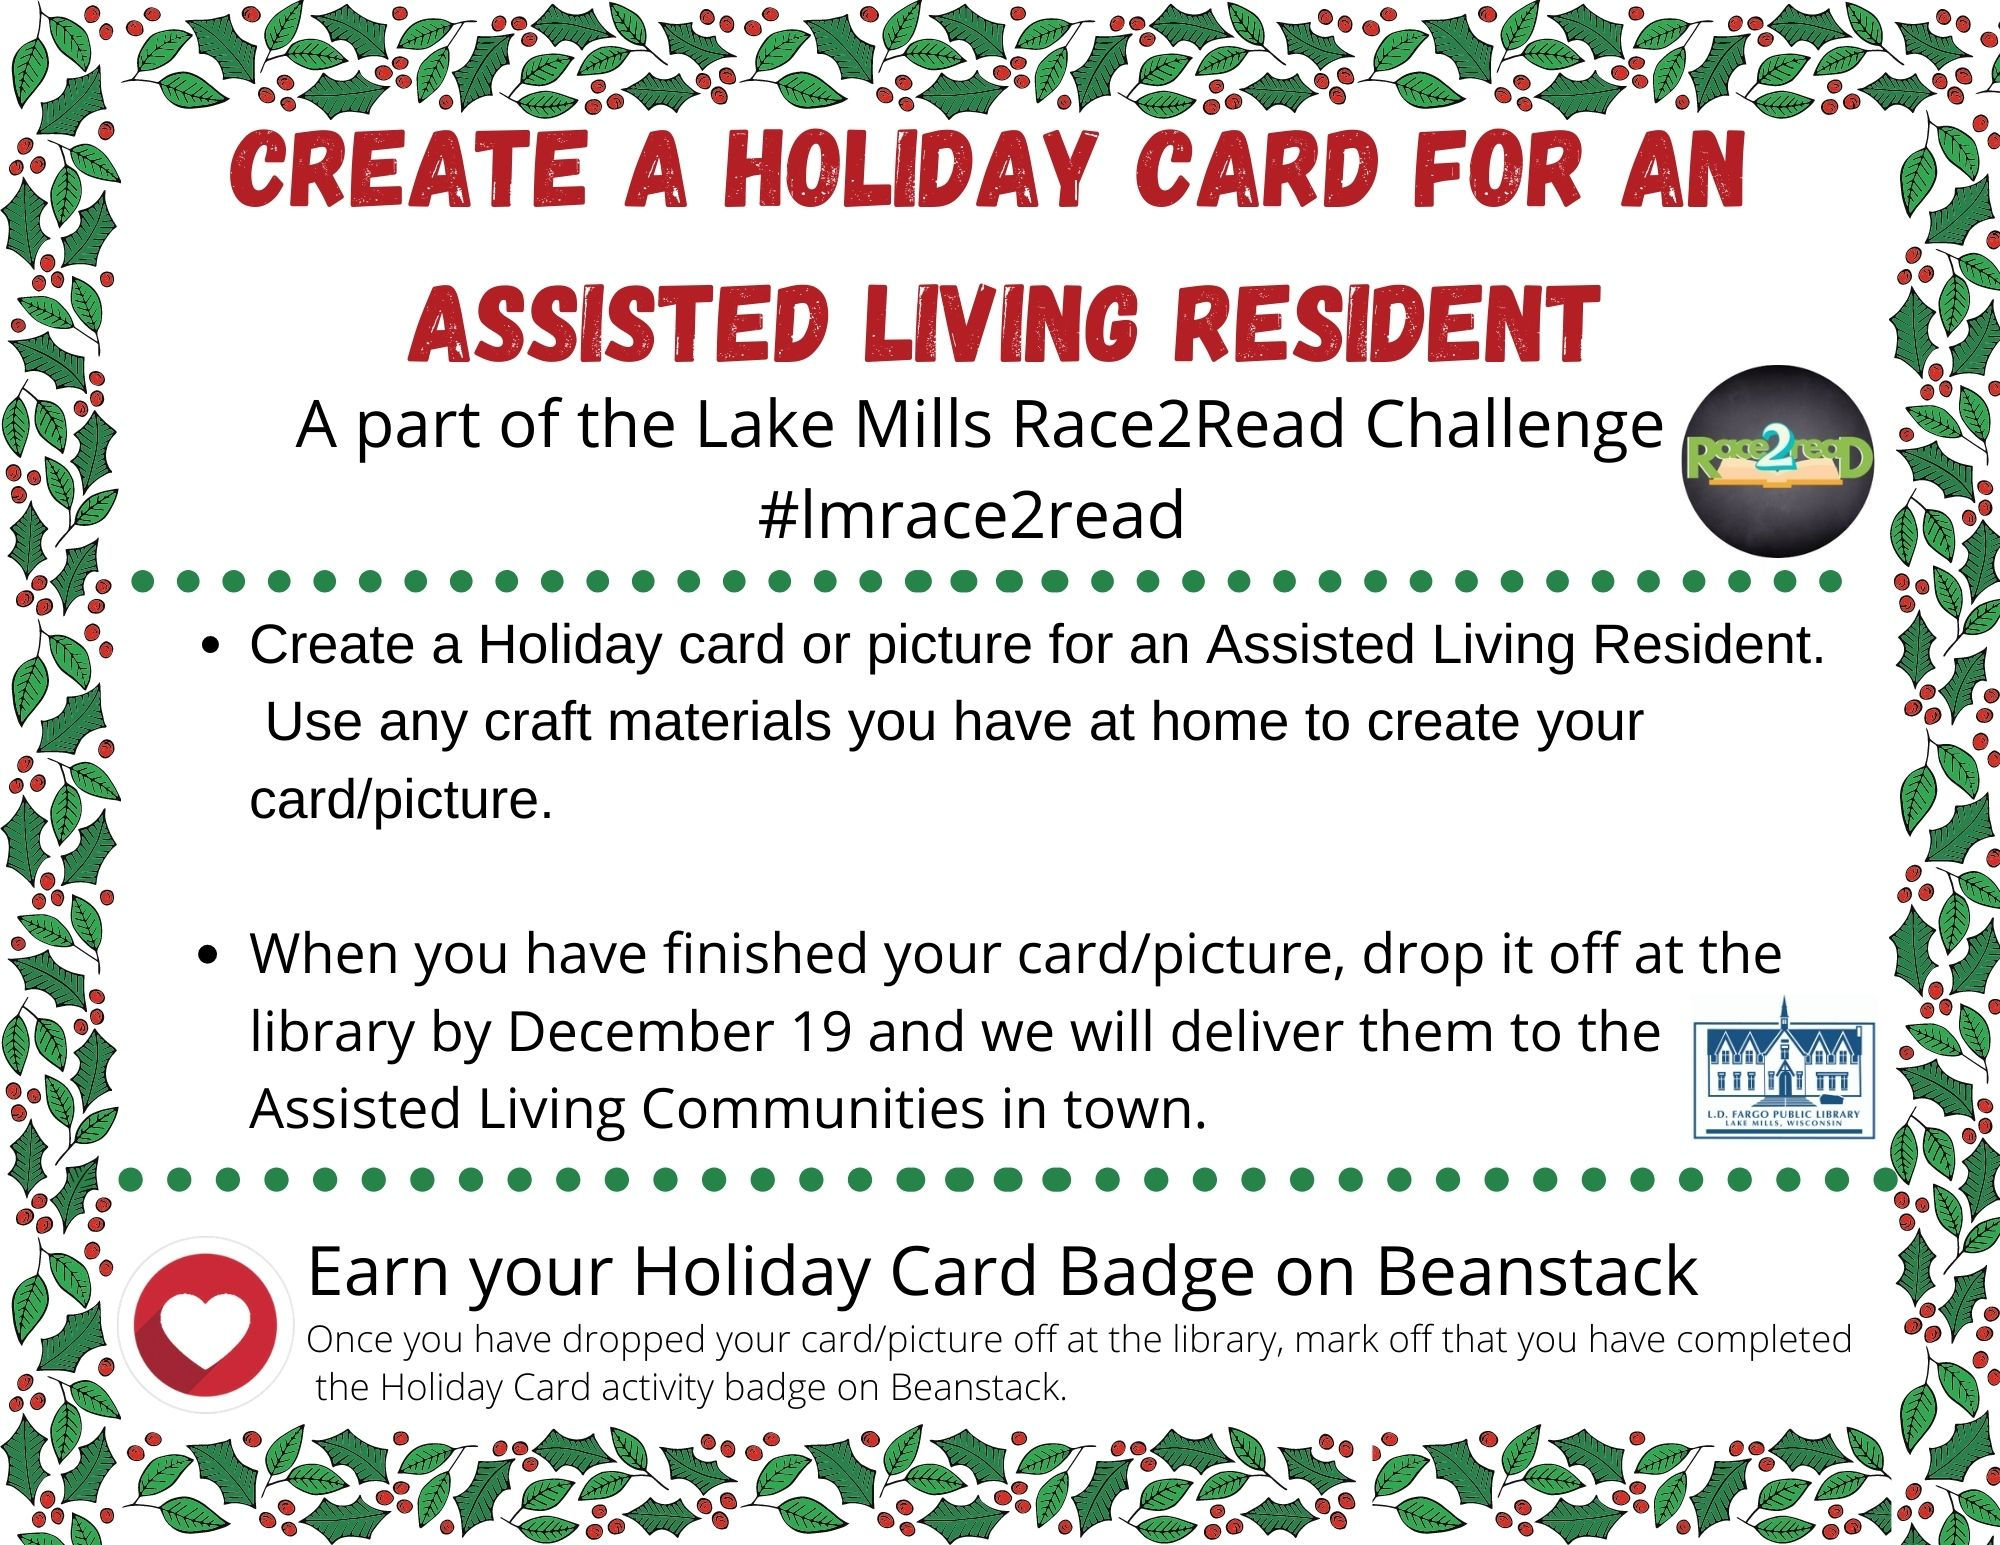 Create a holiday card or picture for a Assisted Living Resident. Use any craft materials you have at home to create your card/picture.  When you have finished your card/picture, drop it off at the library by December 19 and we will deliver them to the Assisted Living Communities in town.